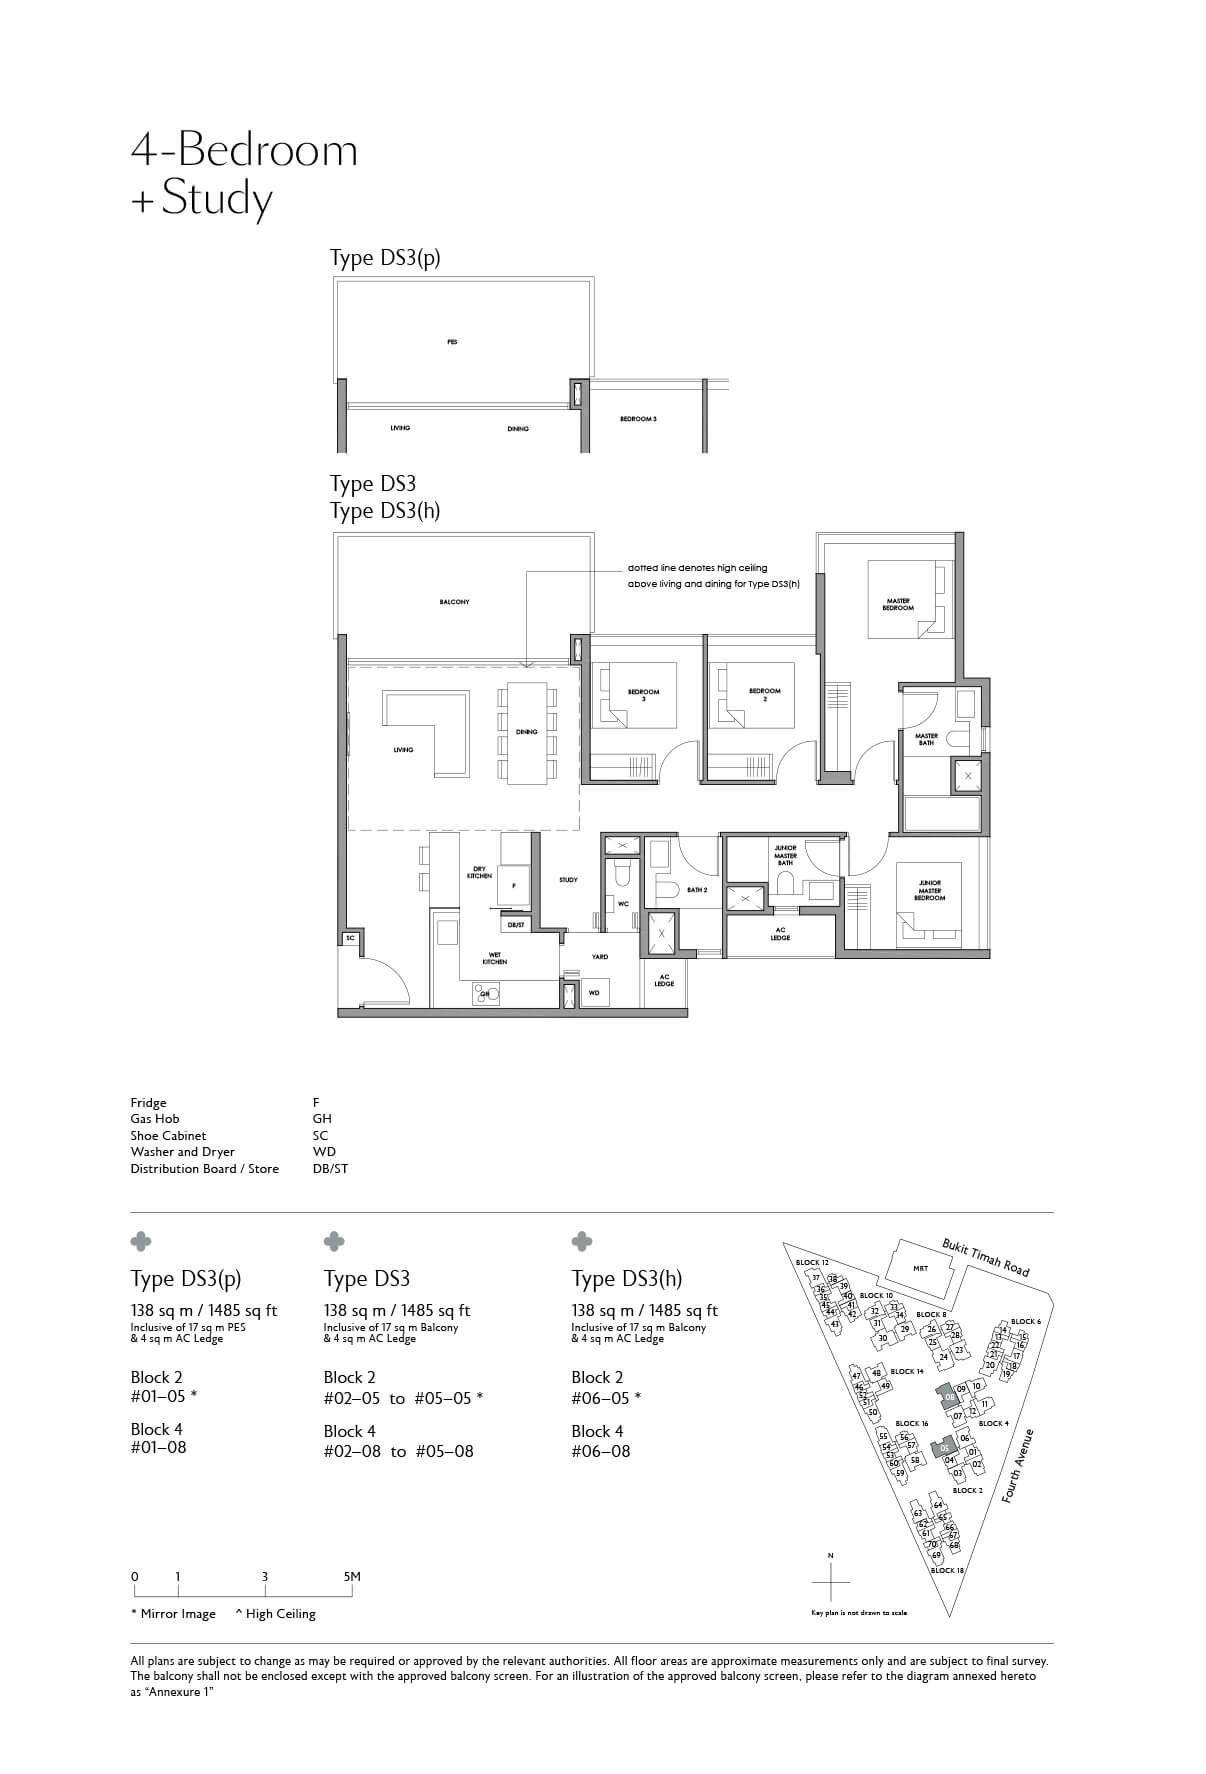 Fourth Avenue Residences Floor Plan 4 Bedroom Study Type DS3